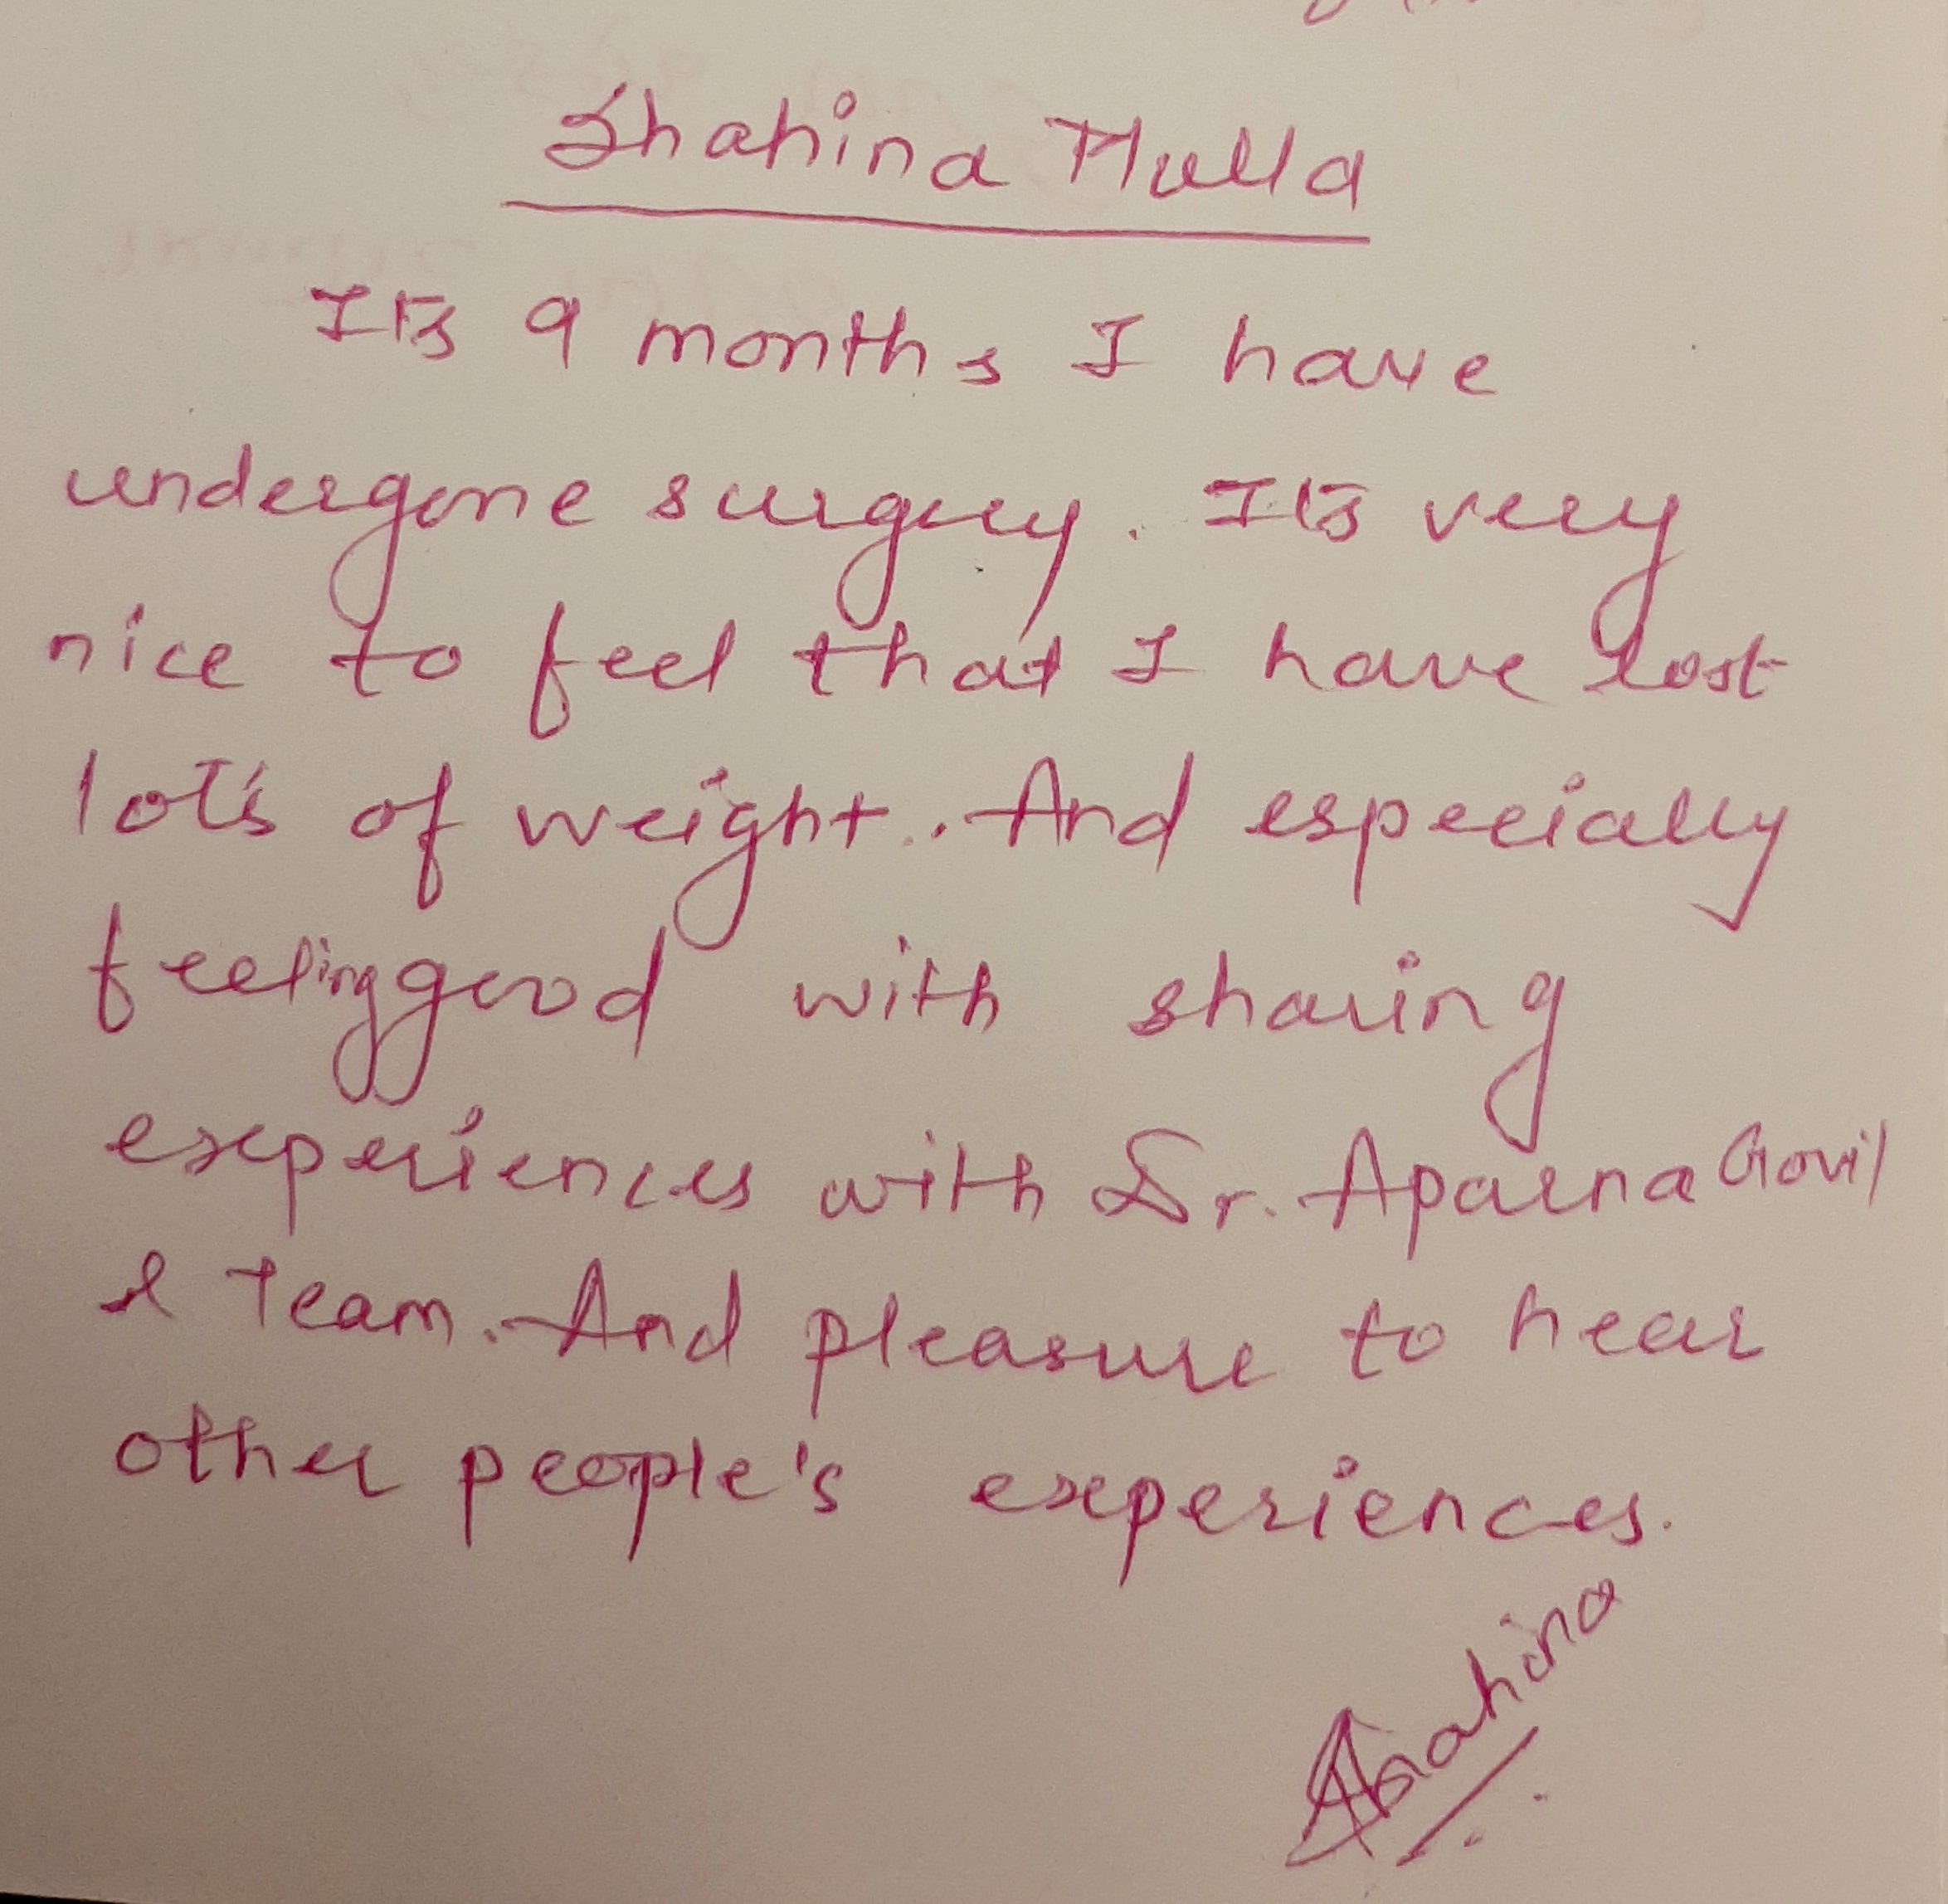 patient testimonial on bariatric surgery and weight loss in india (3)